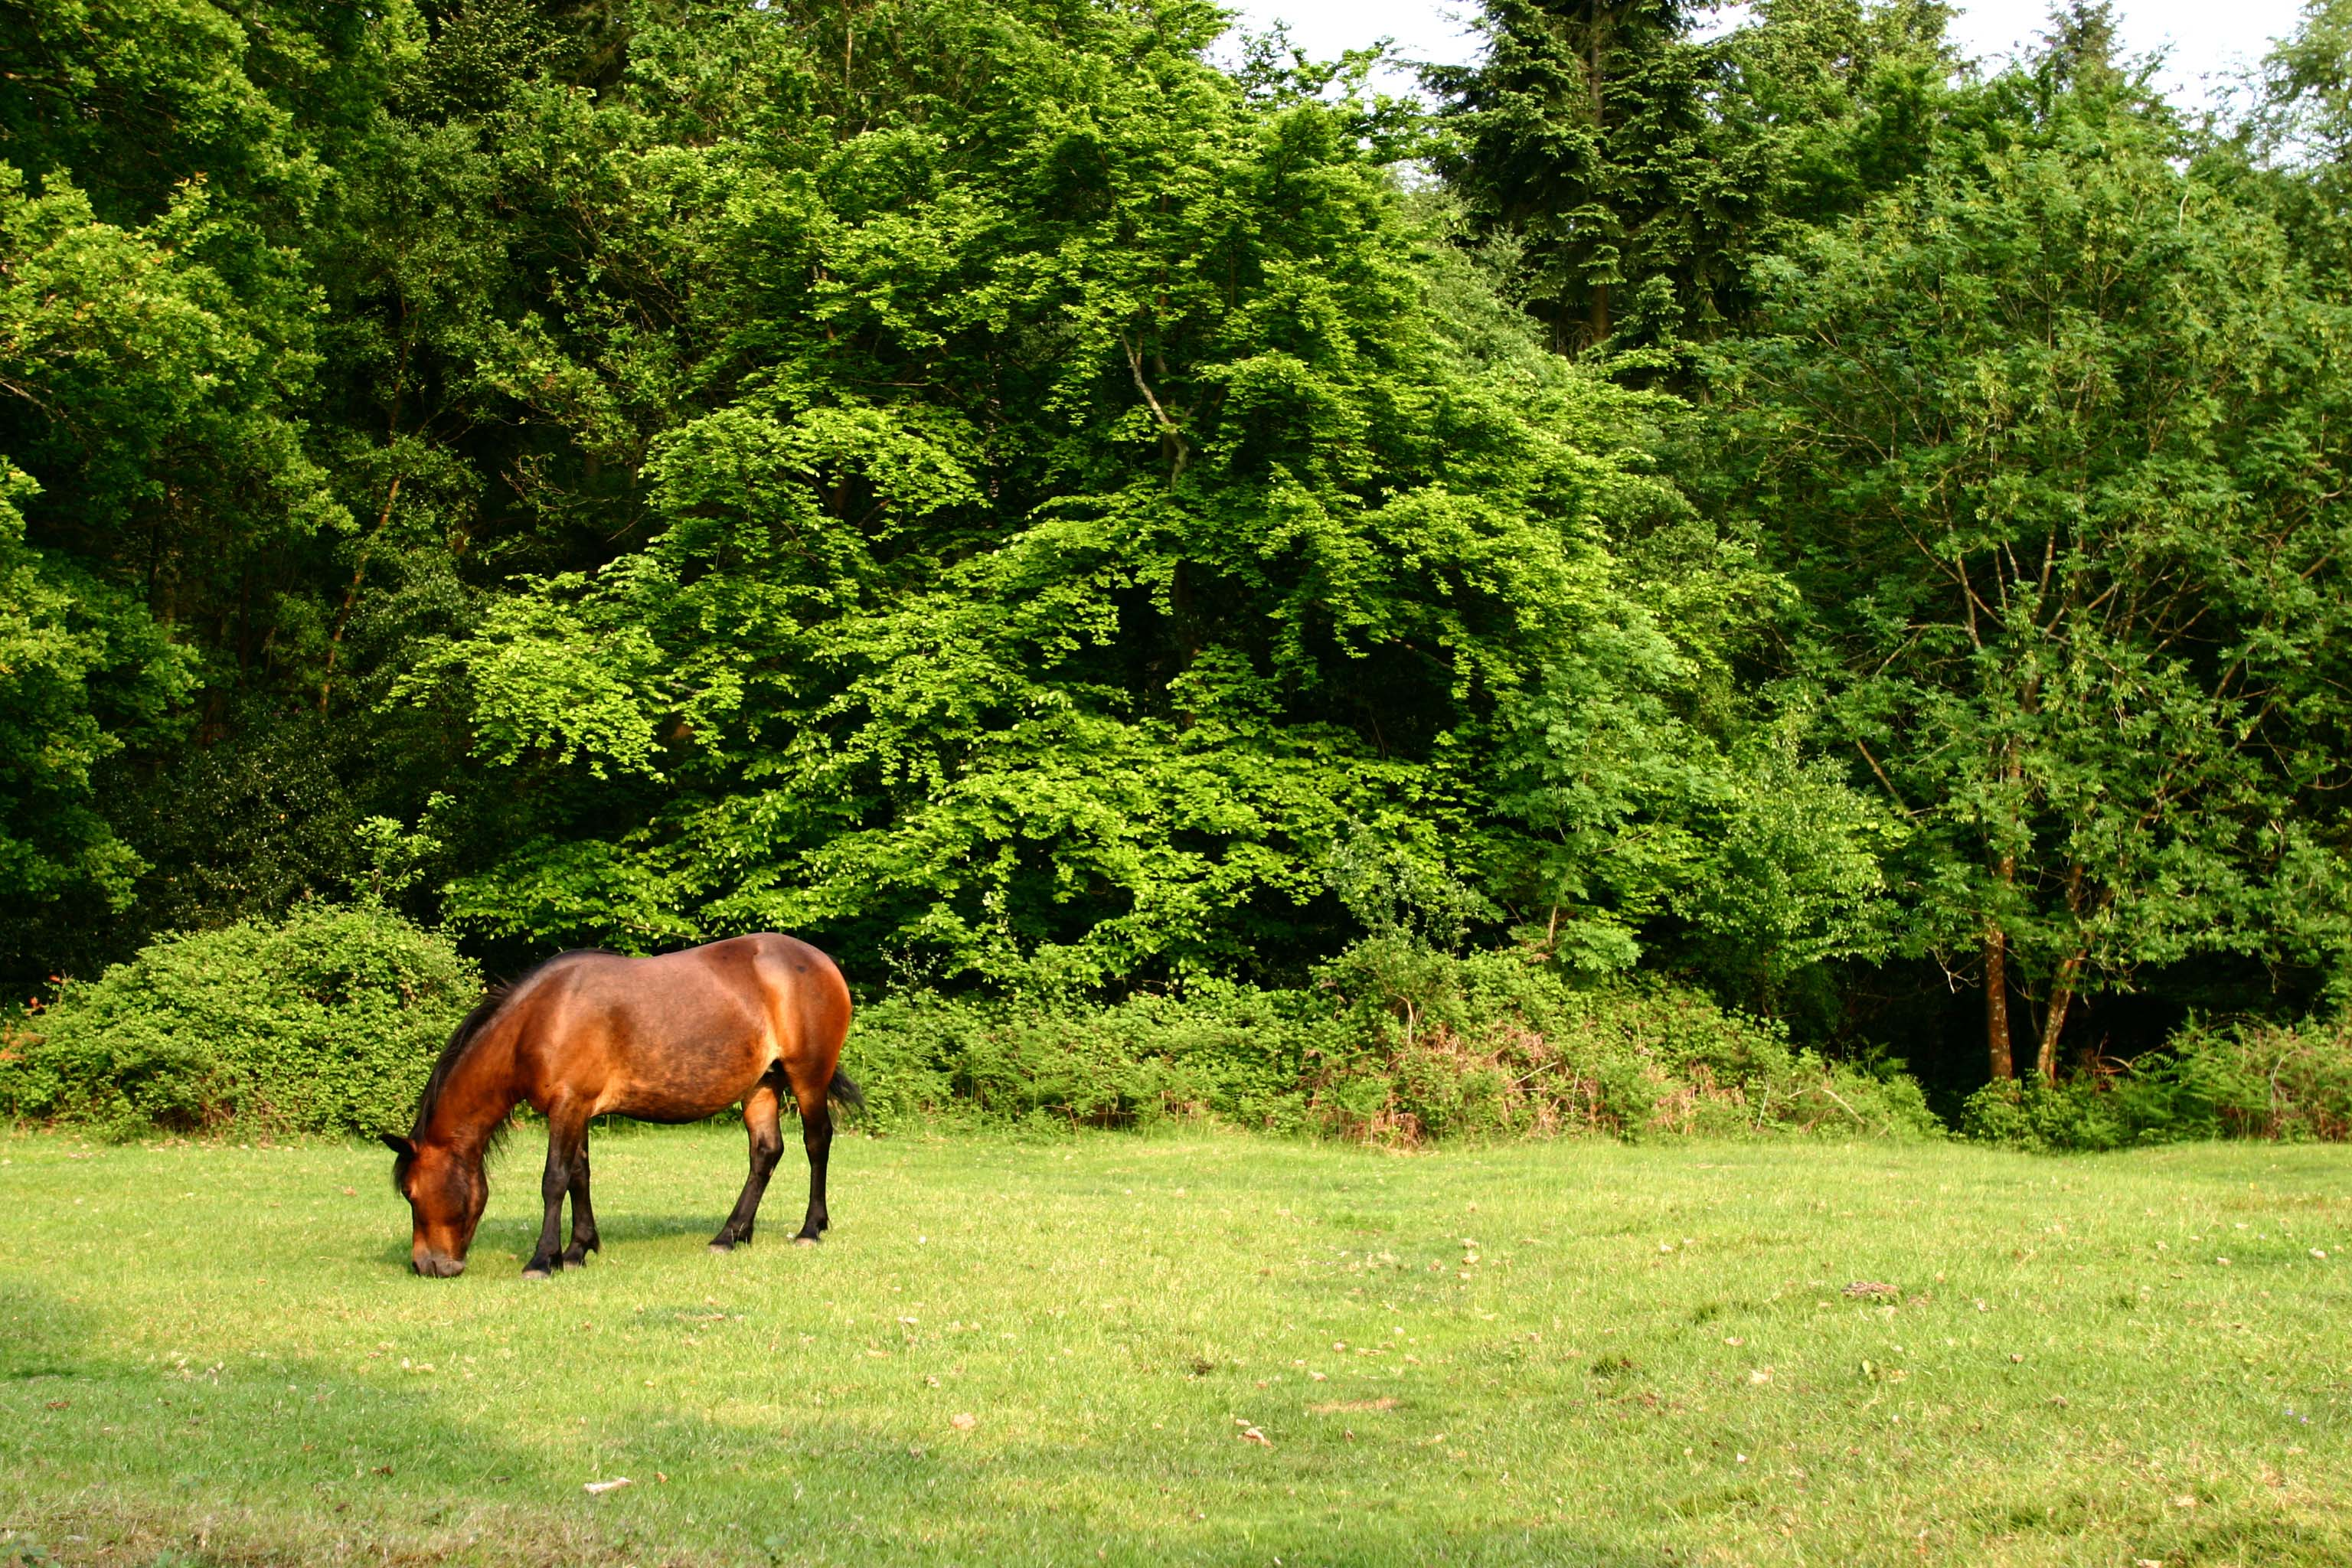 CARE FOR THE NEW FOREST